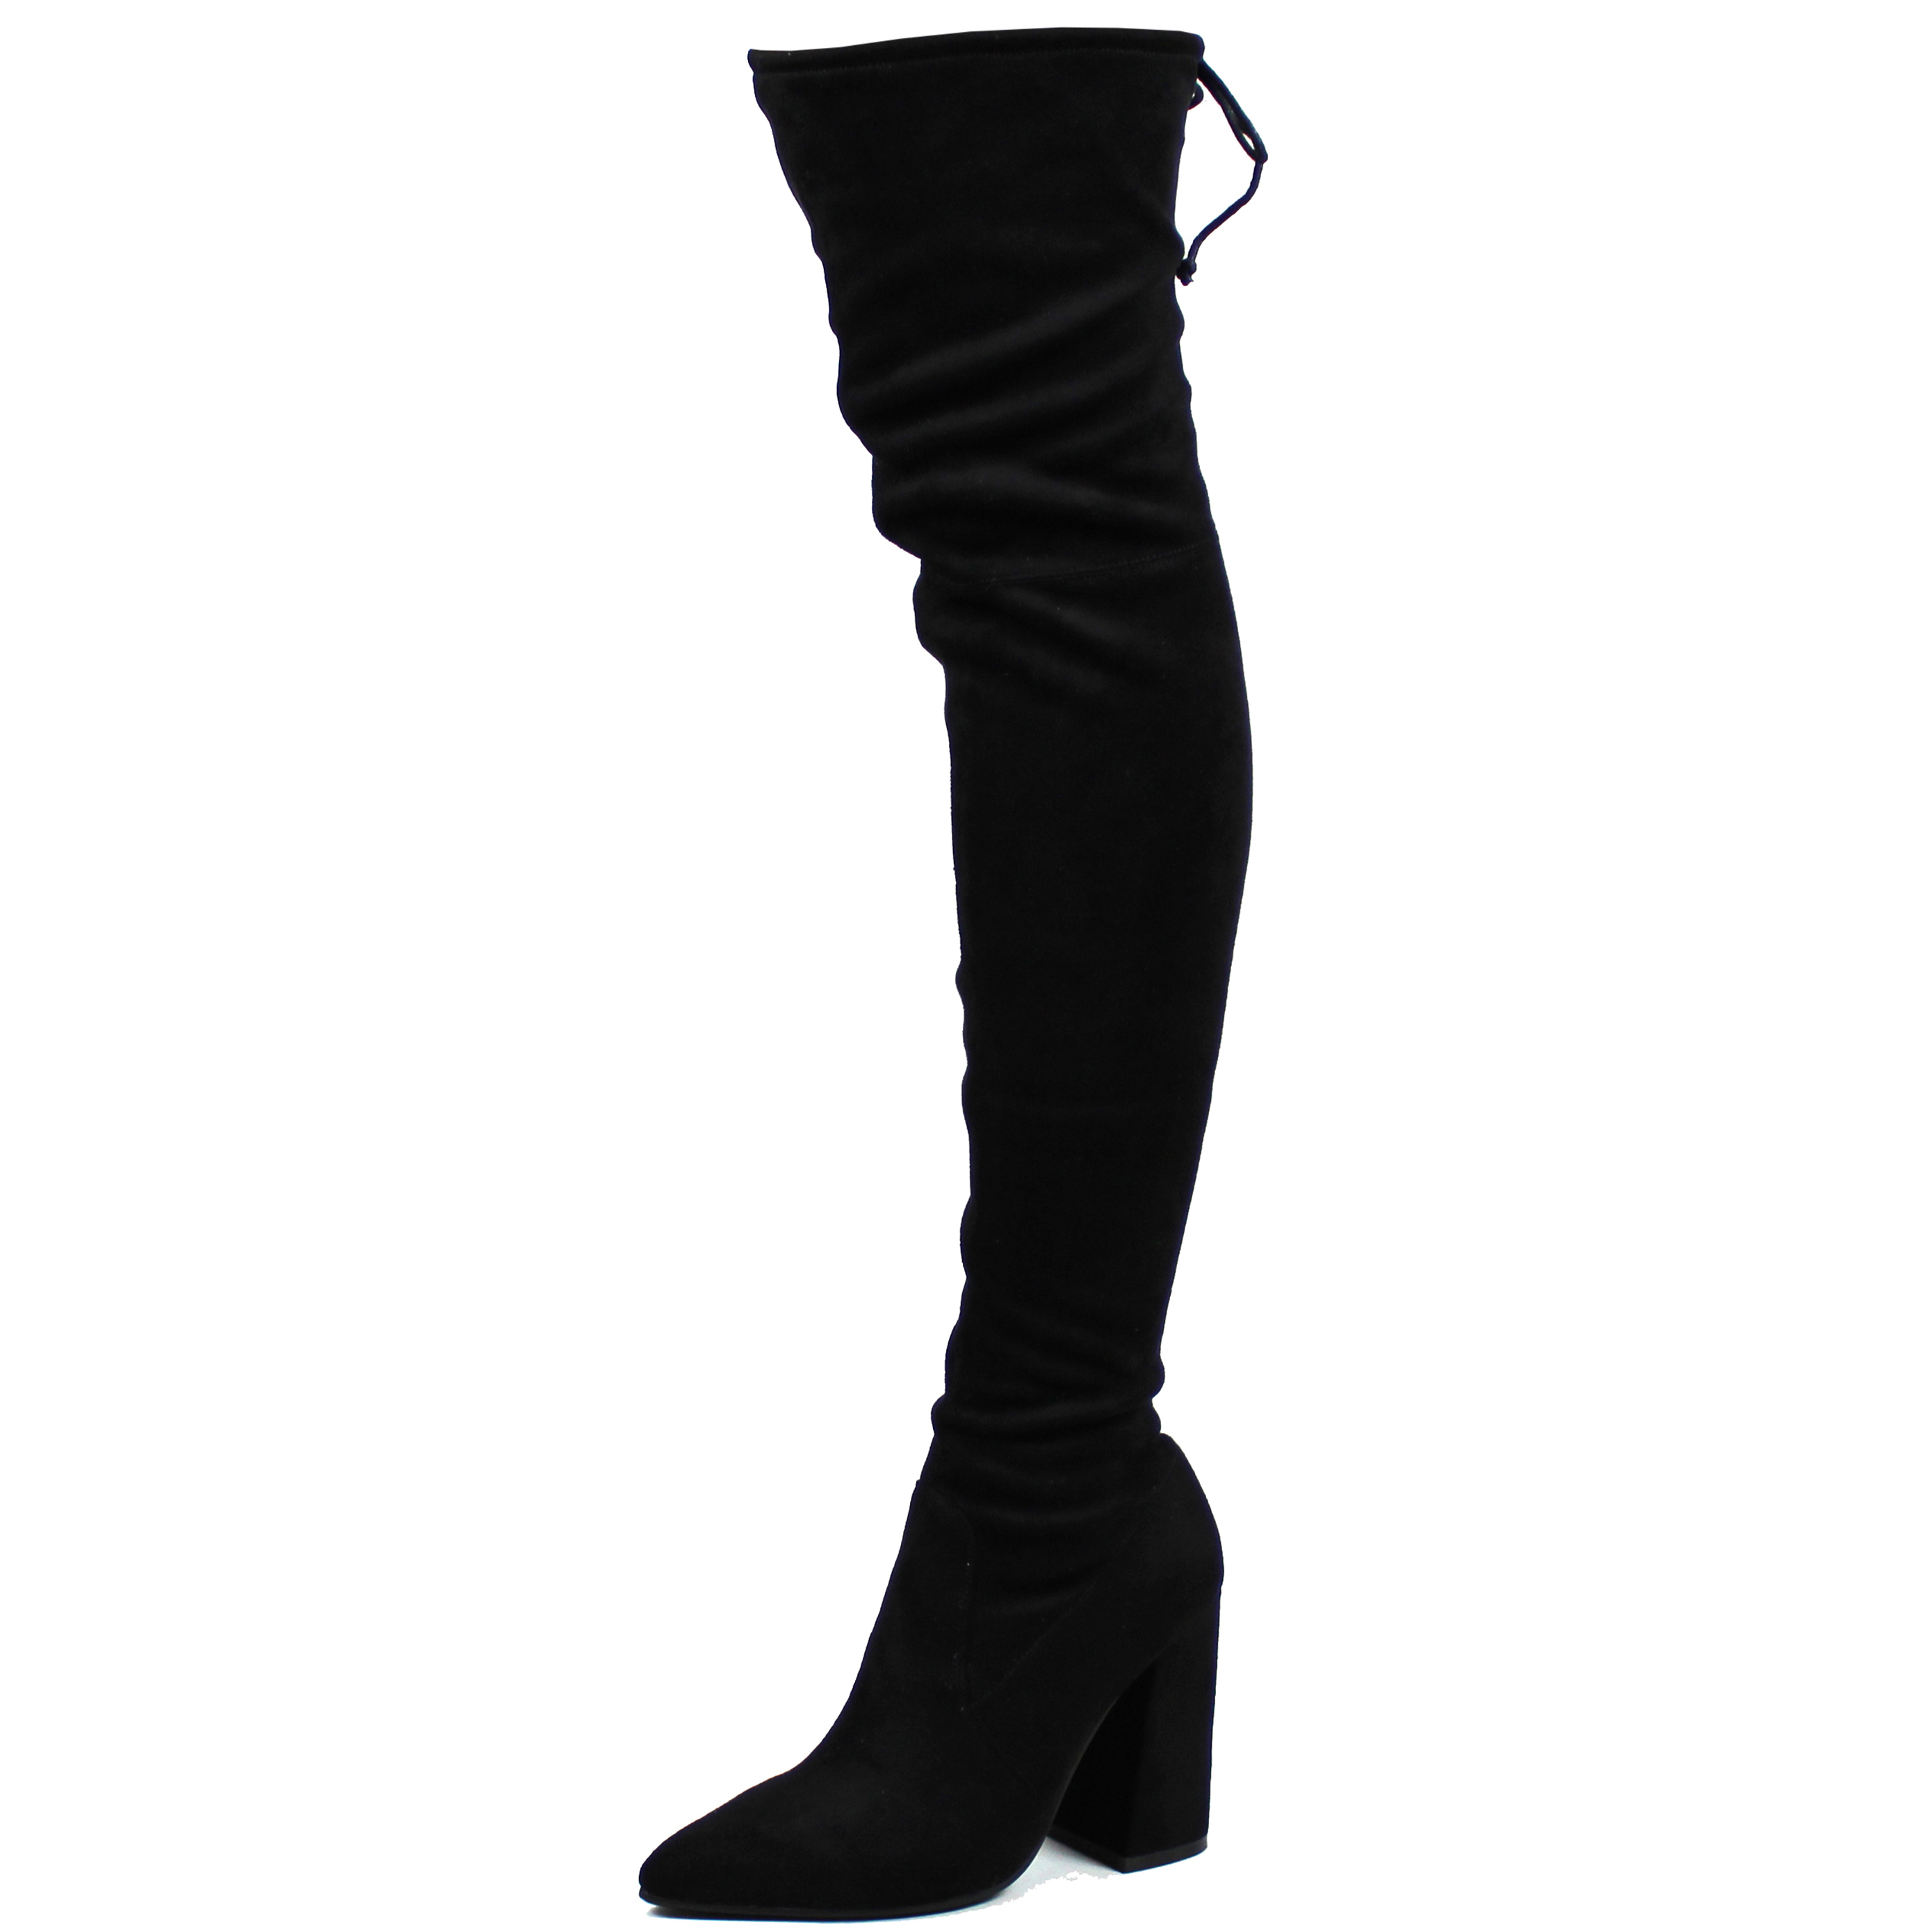 8d41f701ac6 Womens Pointed Toe Block Heel Sock Fit Over Knee Fashion Thigh High Boot UK  3-10